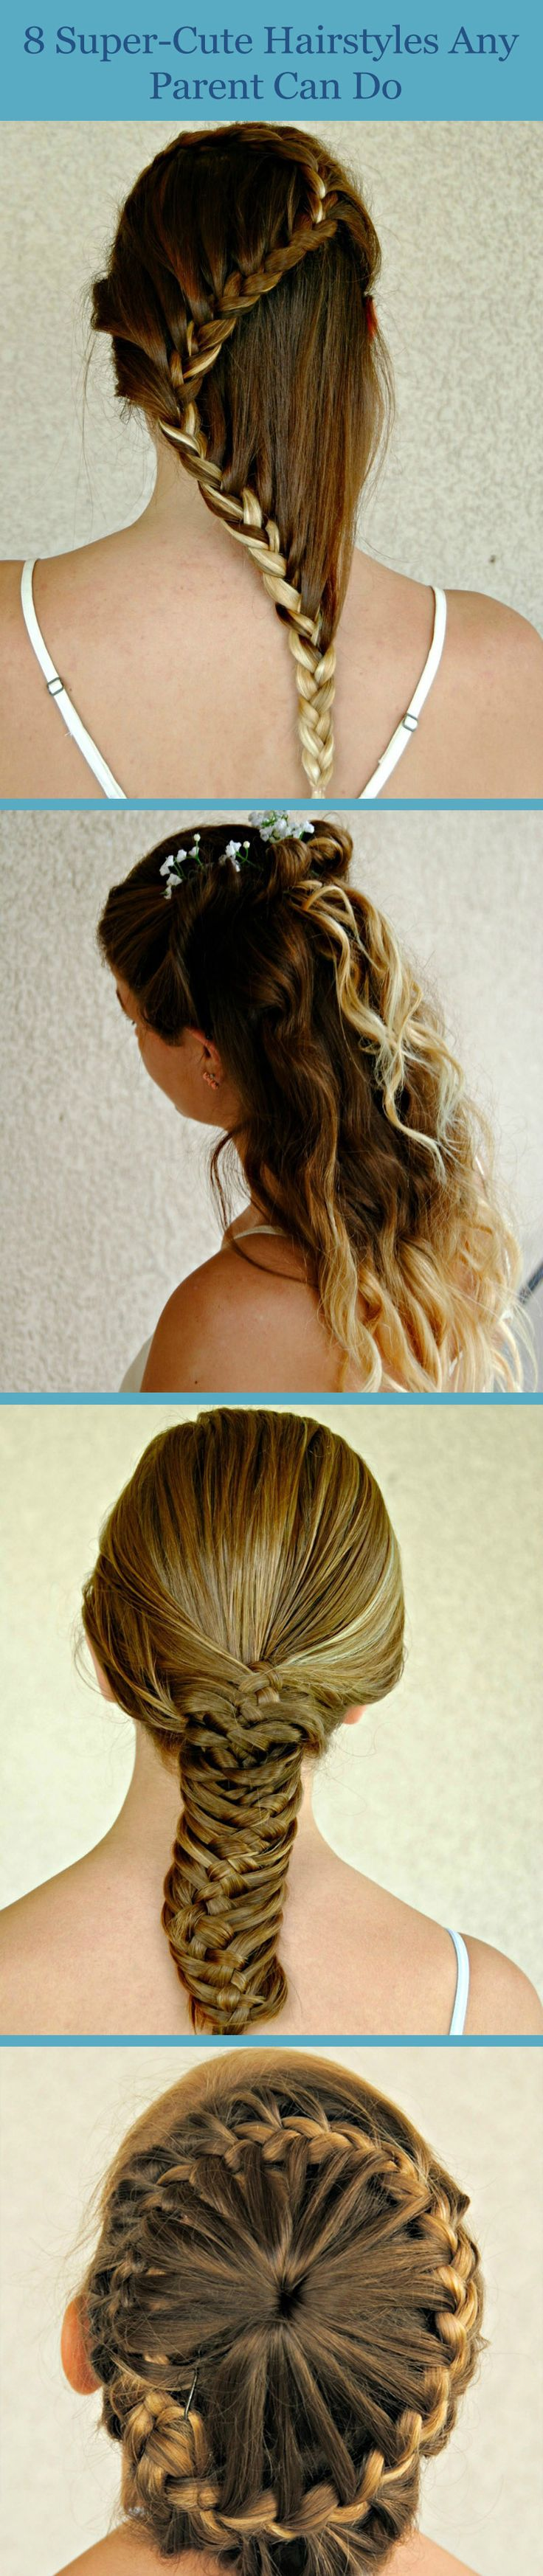 83 best Hair Tutorials images on Pinterest